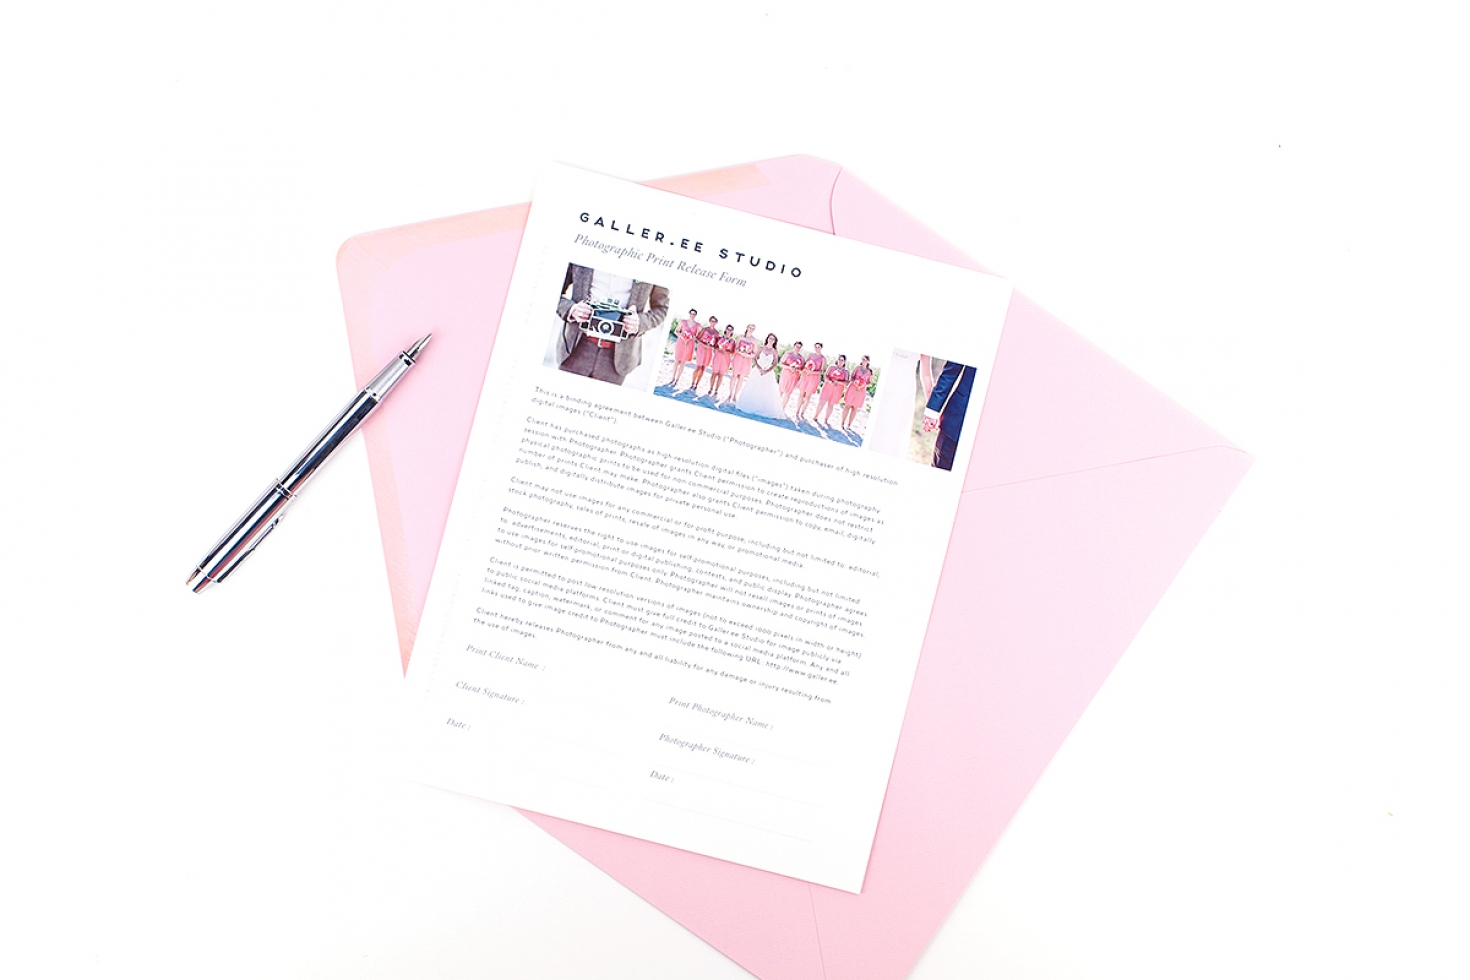 Print Release Form | Interactive Print Release Form Shopgalleree Com Photography